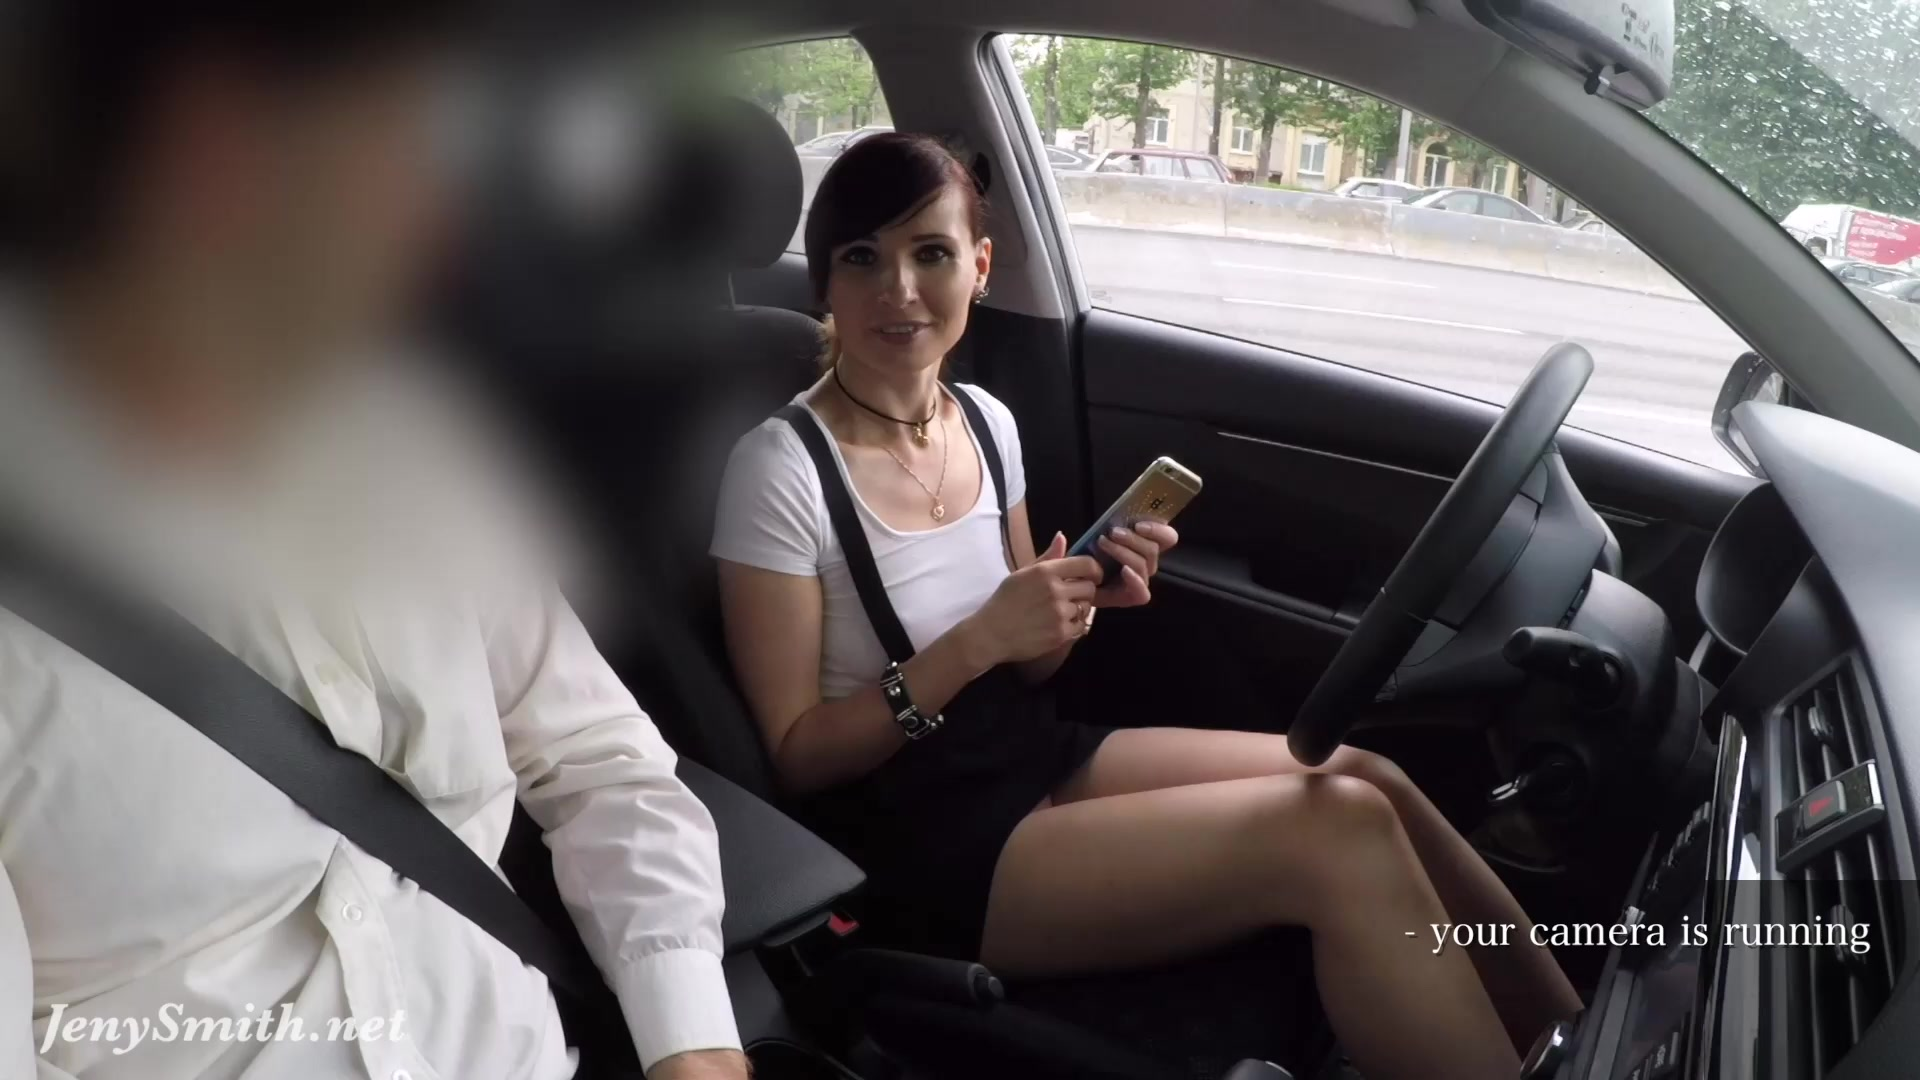 Dealer's manager caught she had no panties during test drive